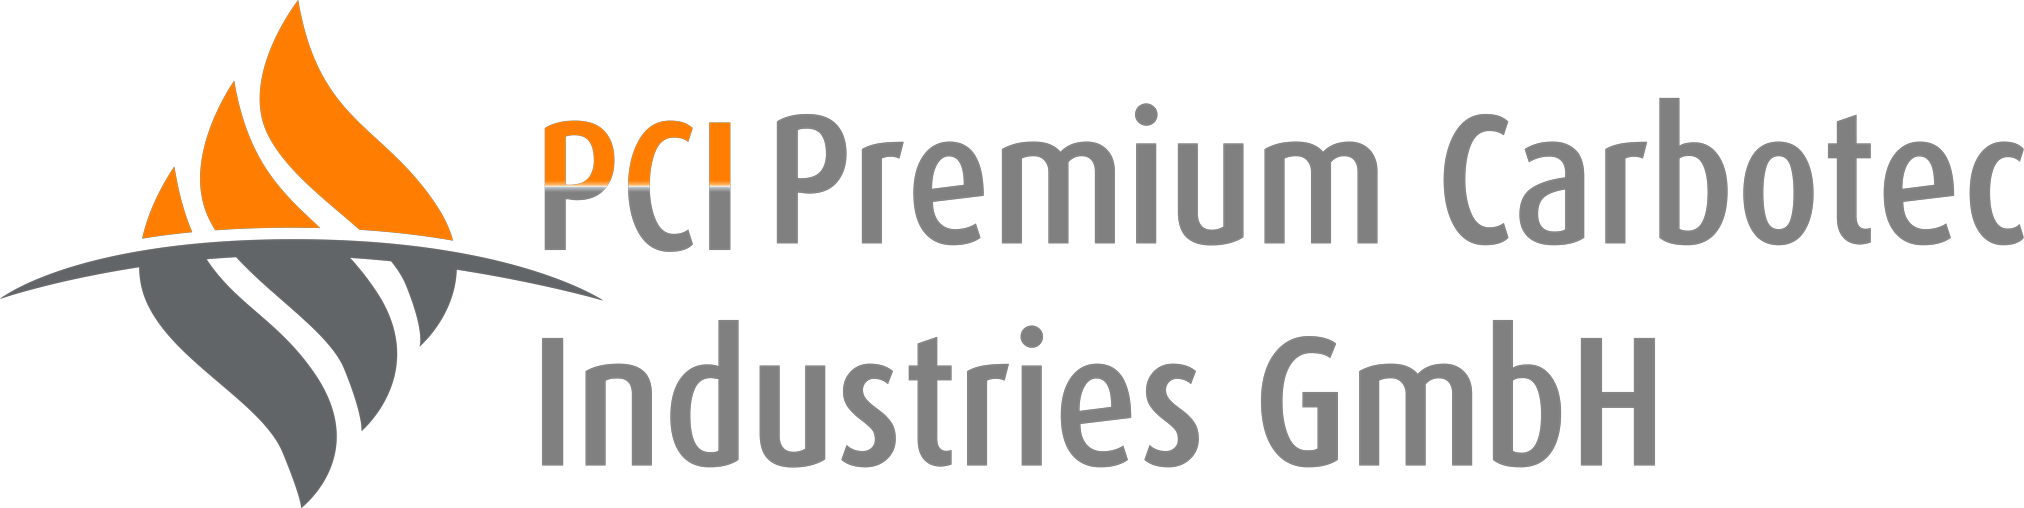 PCI Premium Carbotec Industries GmbH